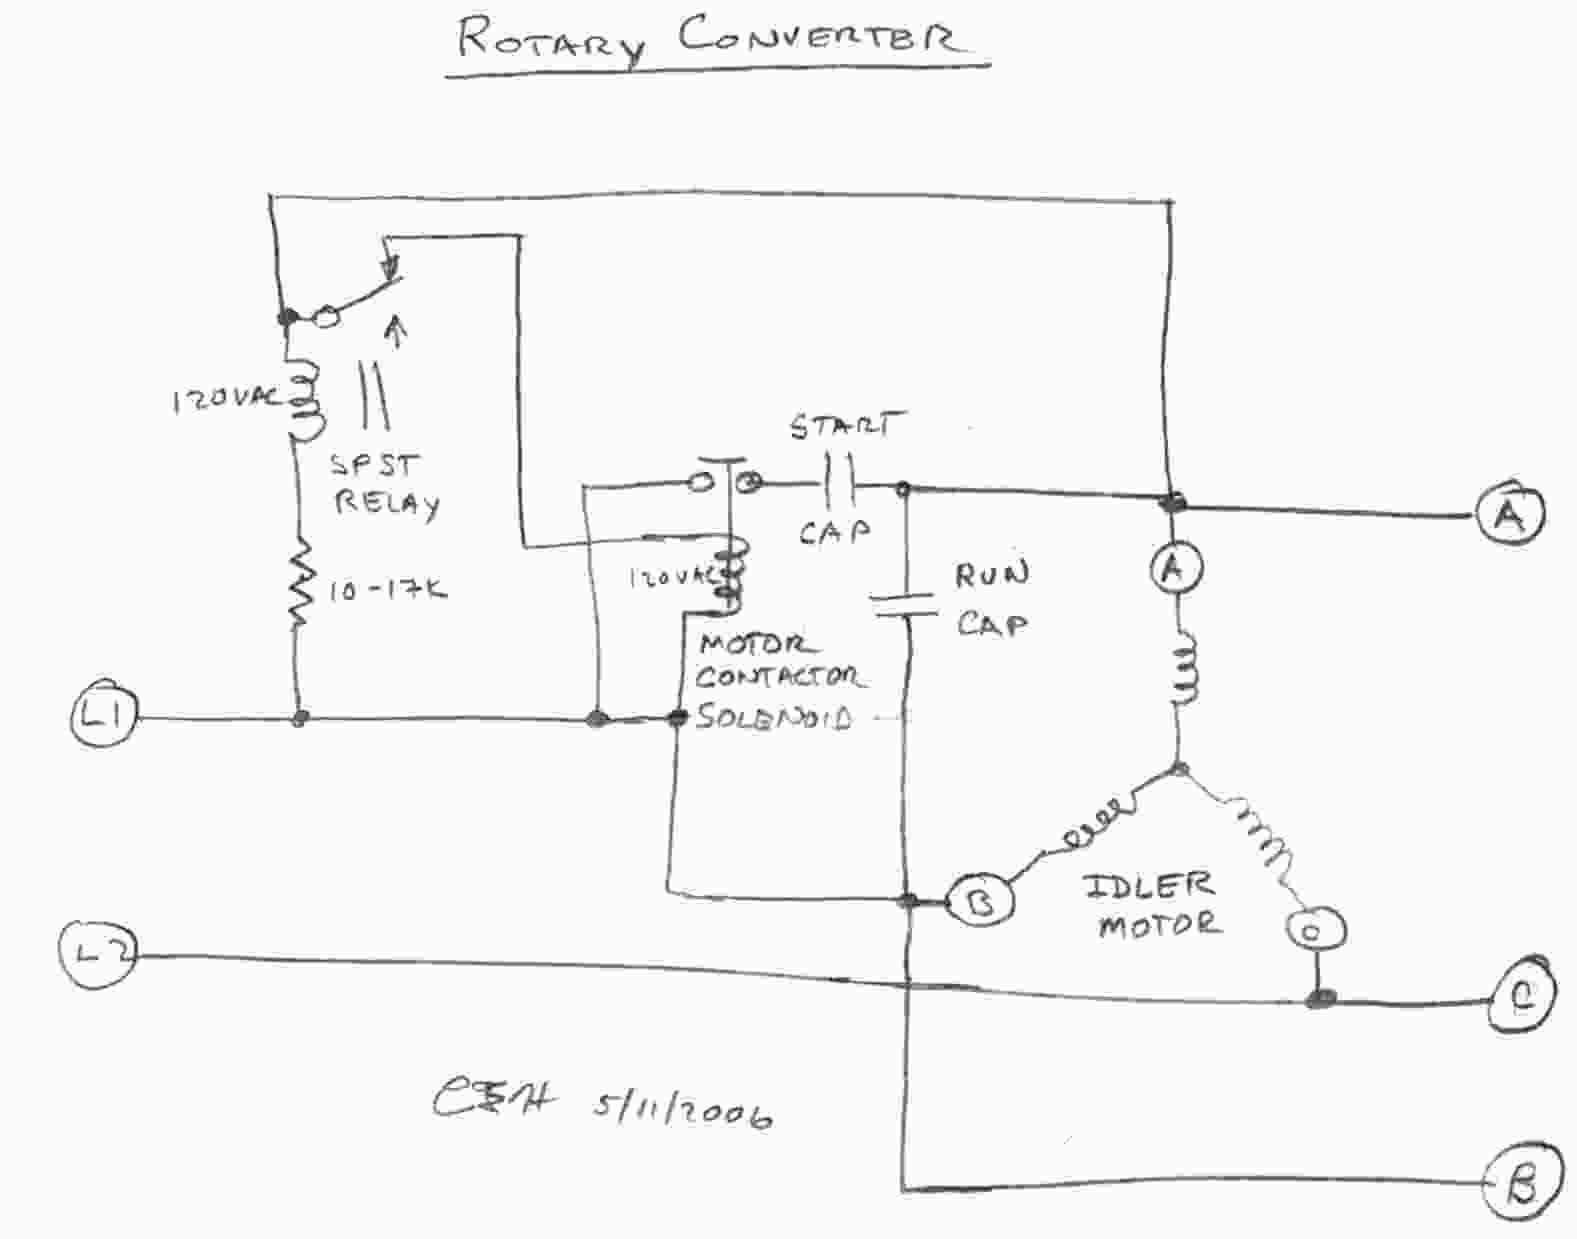 Three Phase Converter Wiring Diagram 3 Phase Converter Wiring Diagram Jerrysmasterkeyforyouand Of Three Phase Converter Wiring Diagram